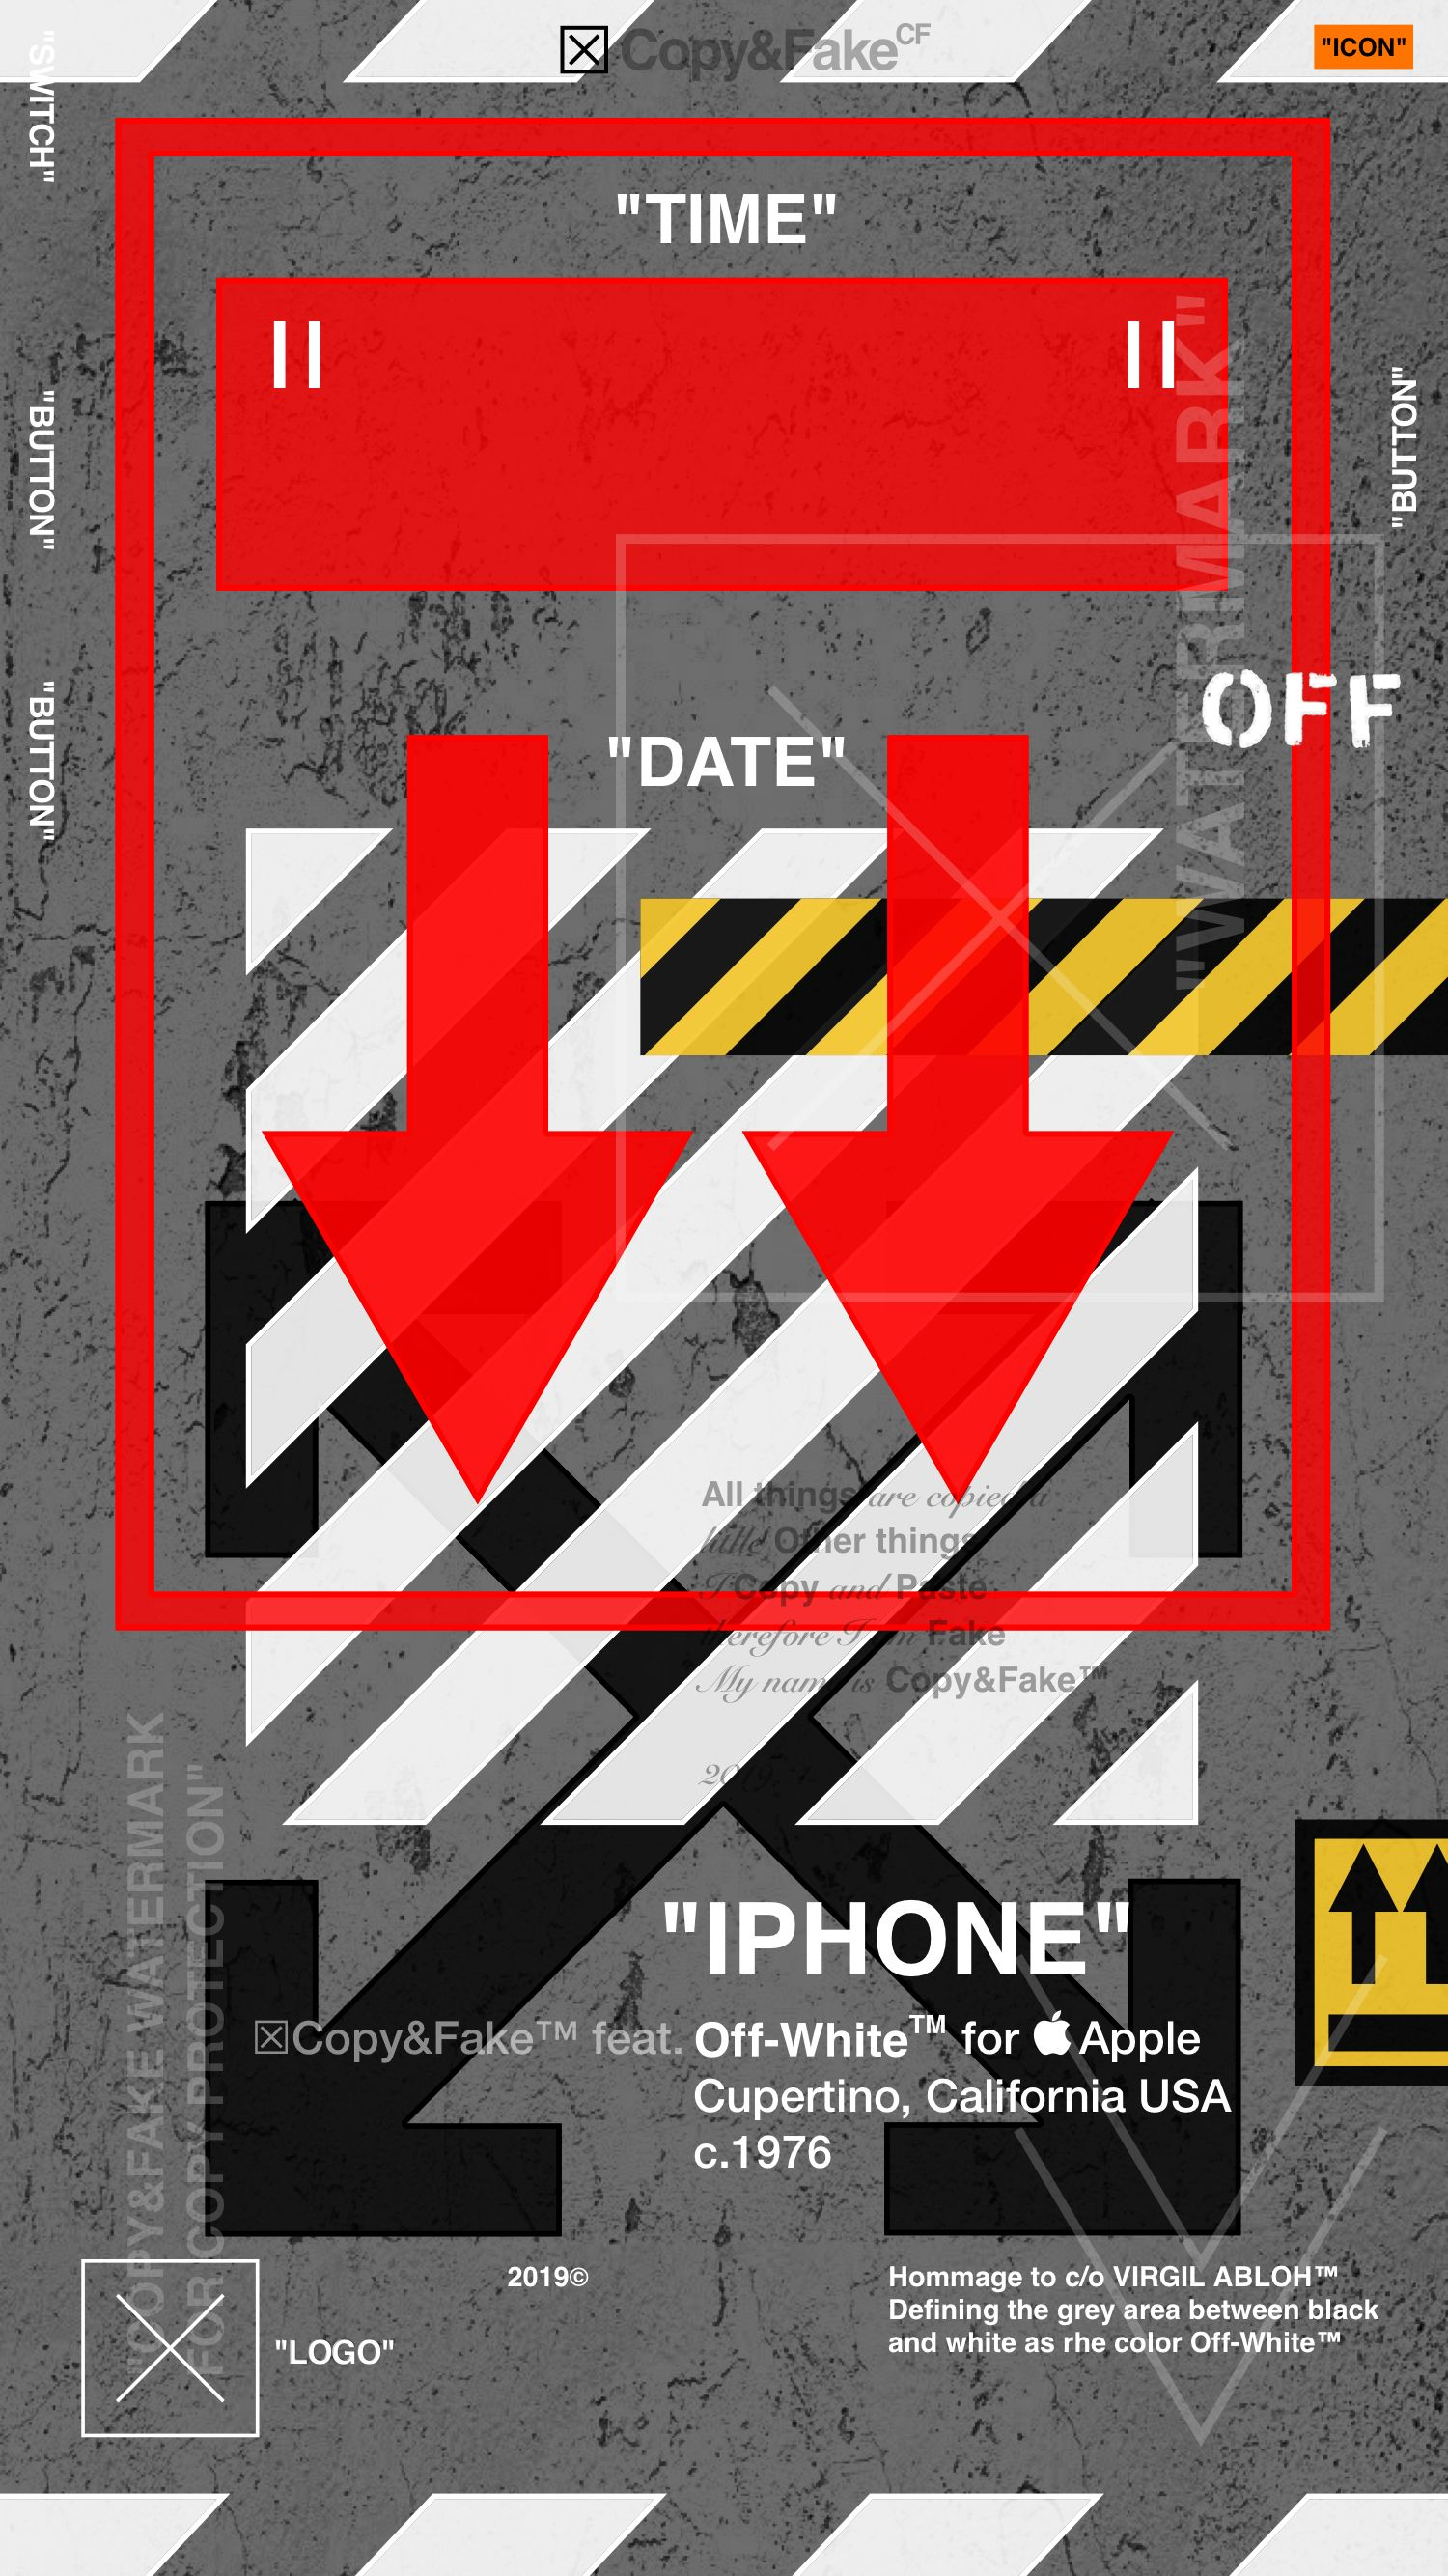 Off White Wallpaper For Iphone Down Arrows Iphone Wallpaper Off White White Wallpaper For Iphone Dark Wallpaper Iphone